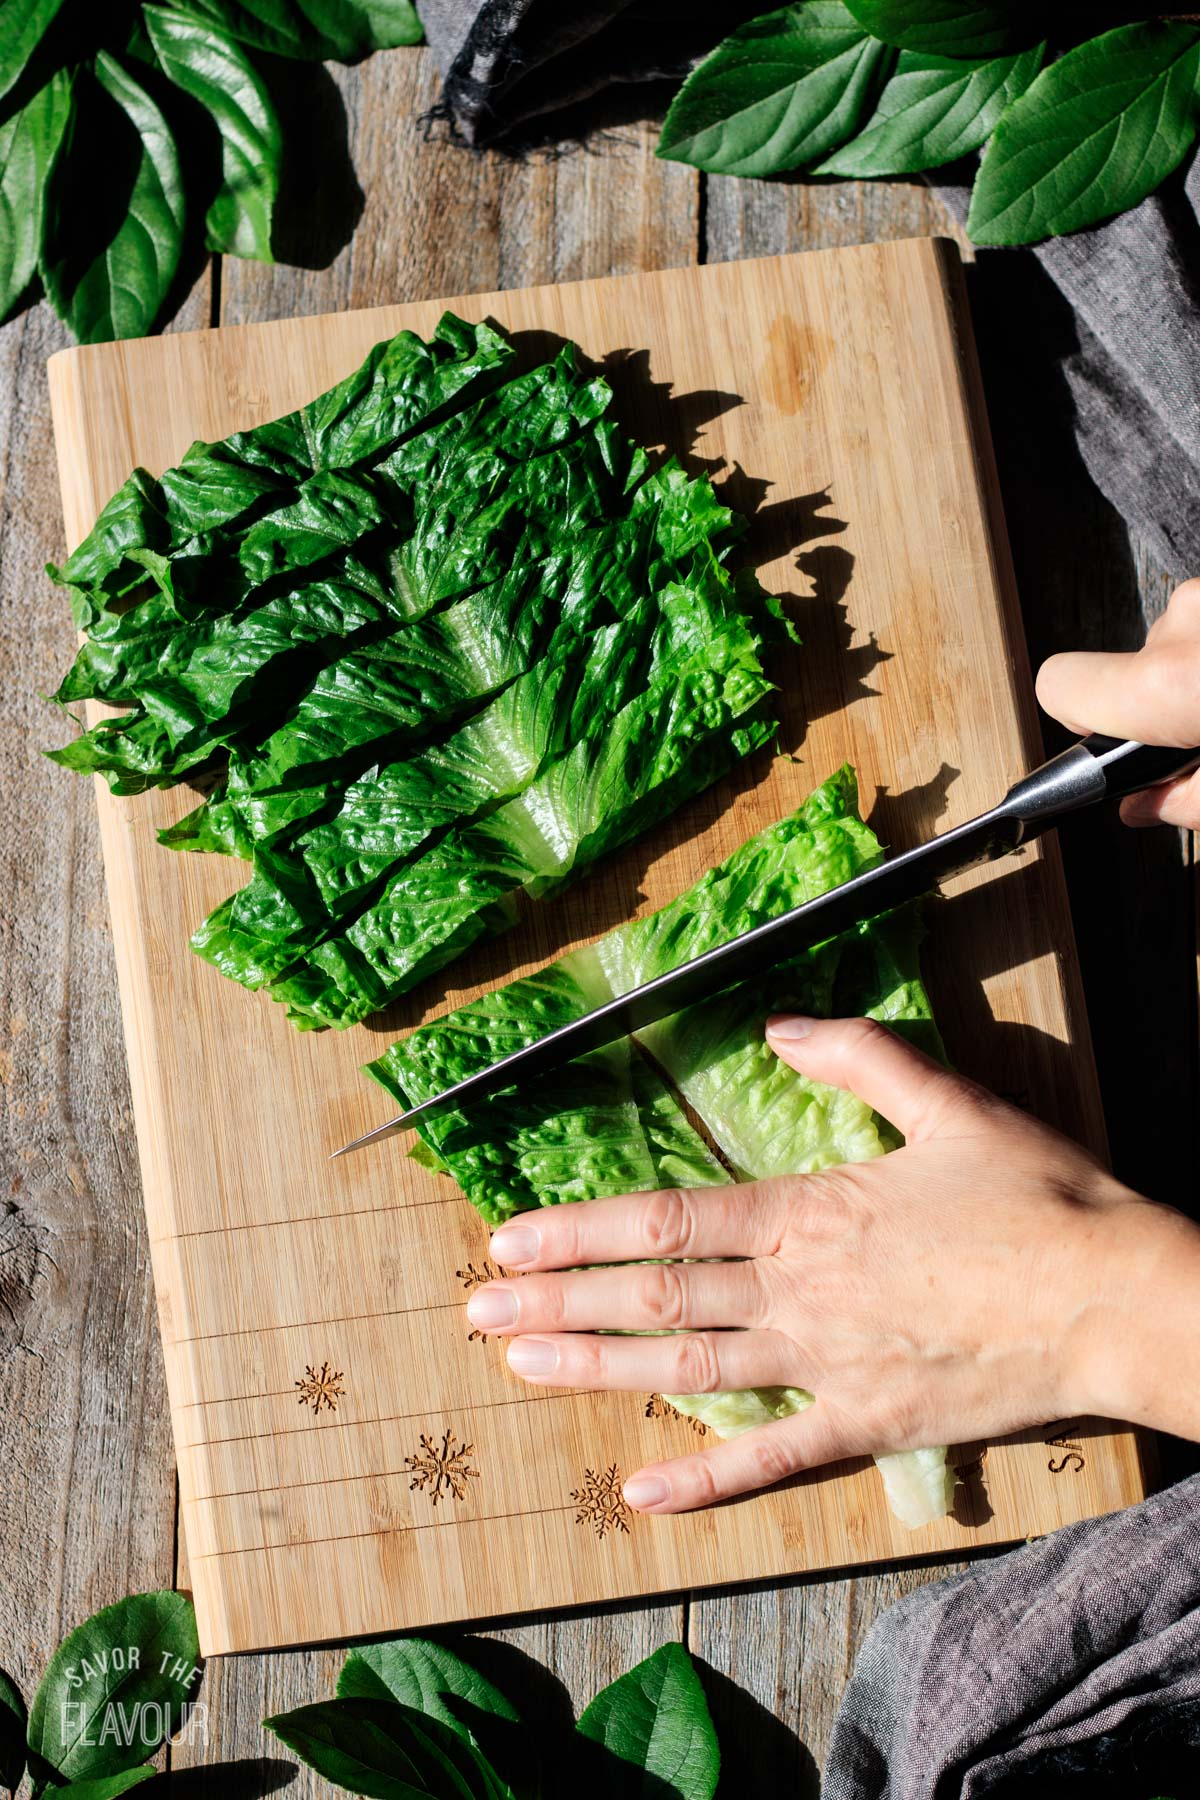 person chopping Romaine lettuce on a cutting board